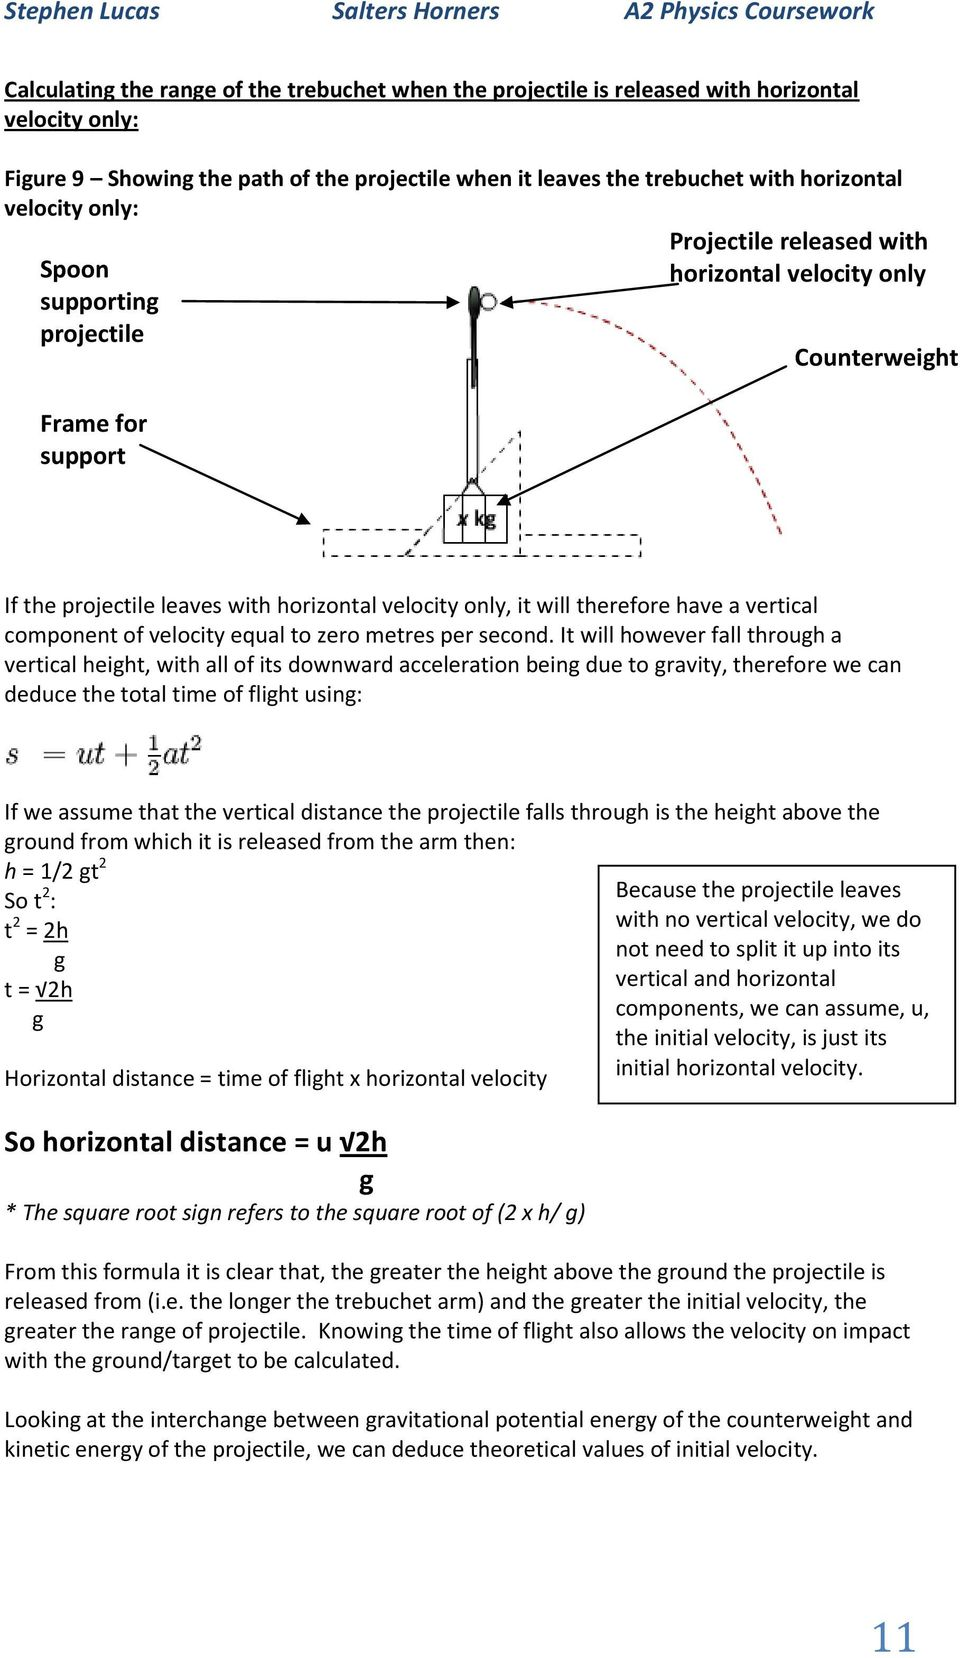 What Affects The Range Of A Trebuchet Pdf Diagram Our Vertical Component Velocity Equal To Zero Metres Per Second